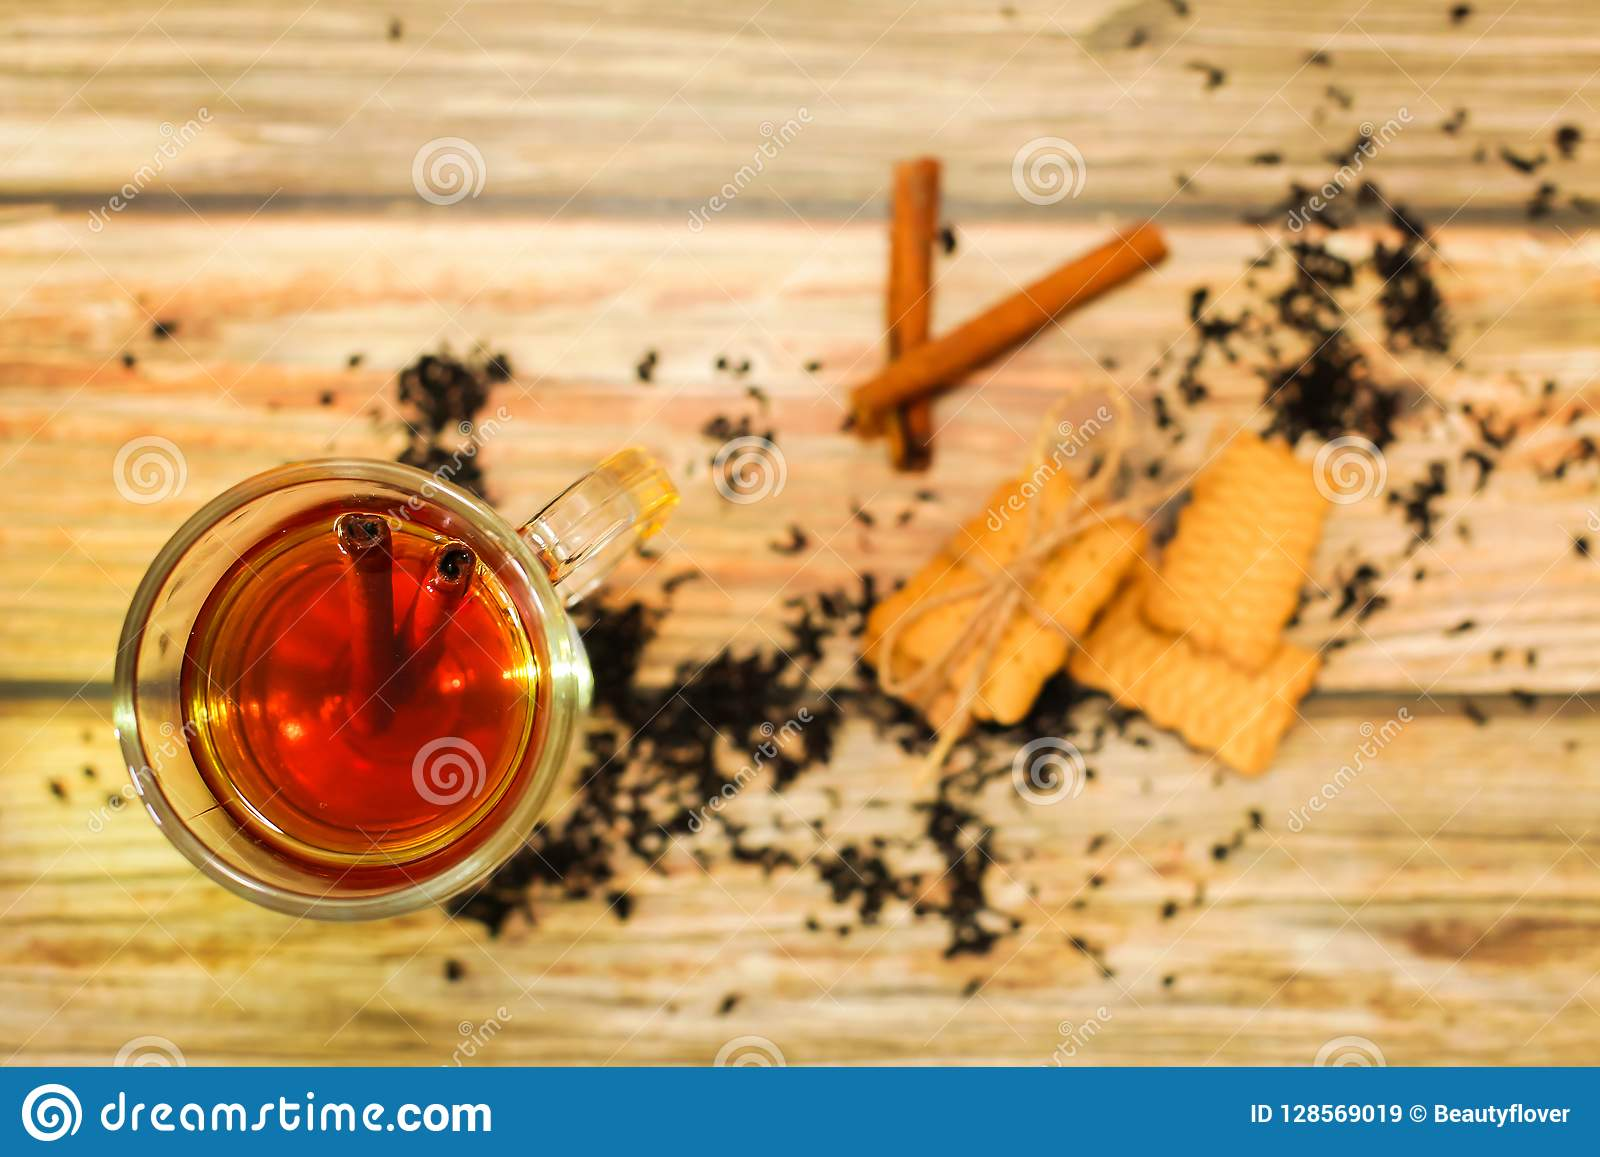 Hot Tea in glass cup with cinnamon sticks tea leaves and cookies on wooden table, flat lay